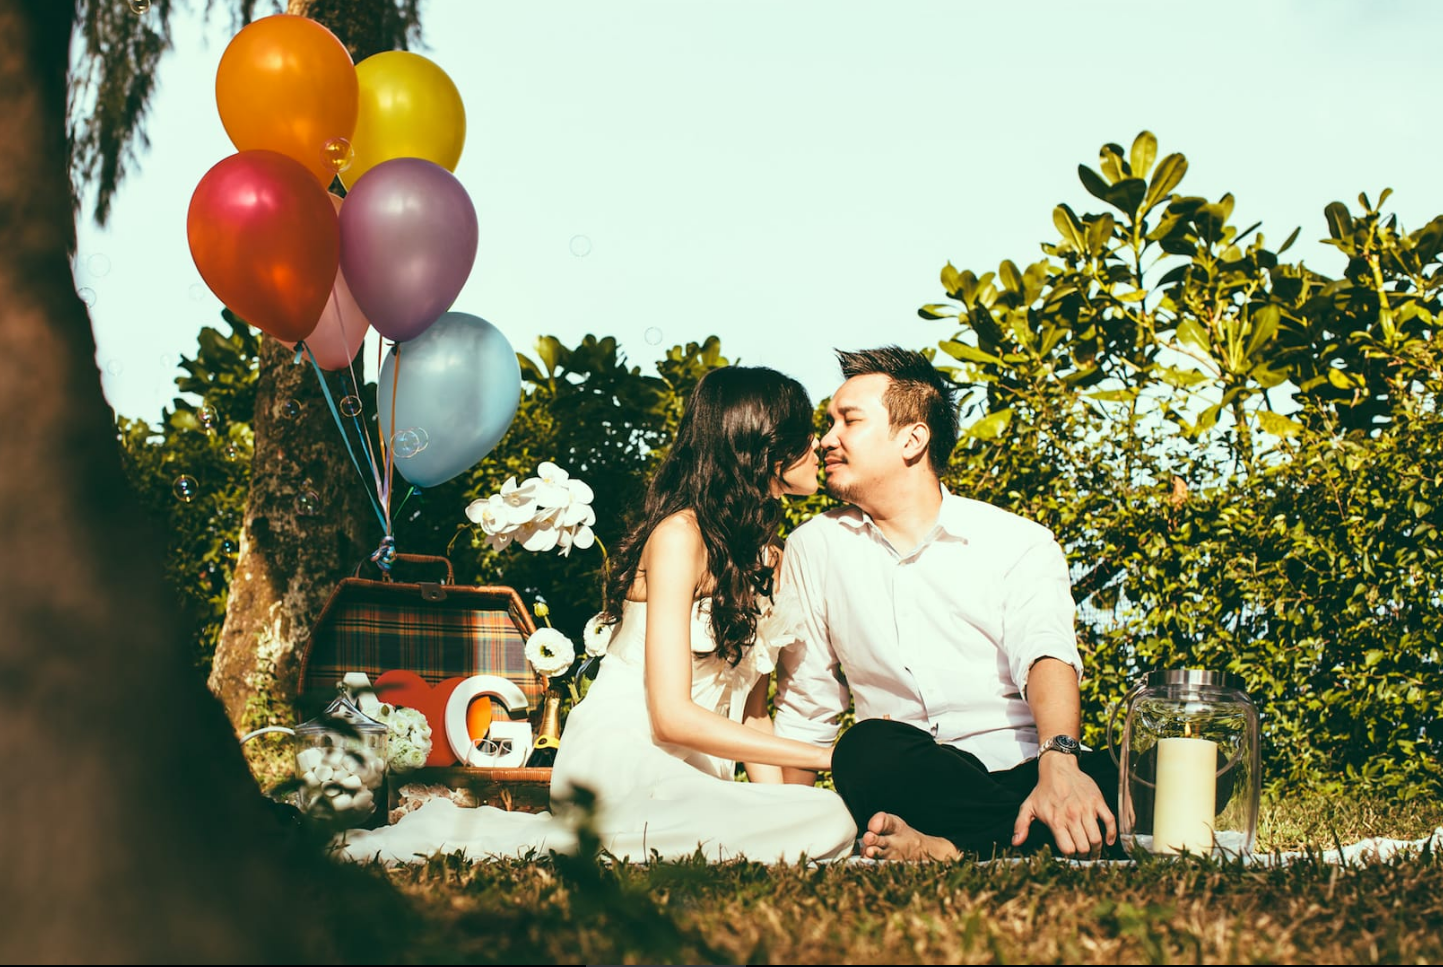 Pre-Wedding Photoshoot Ideas